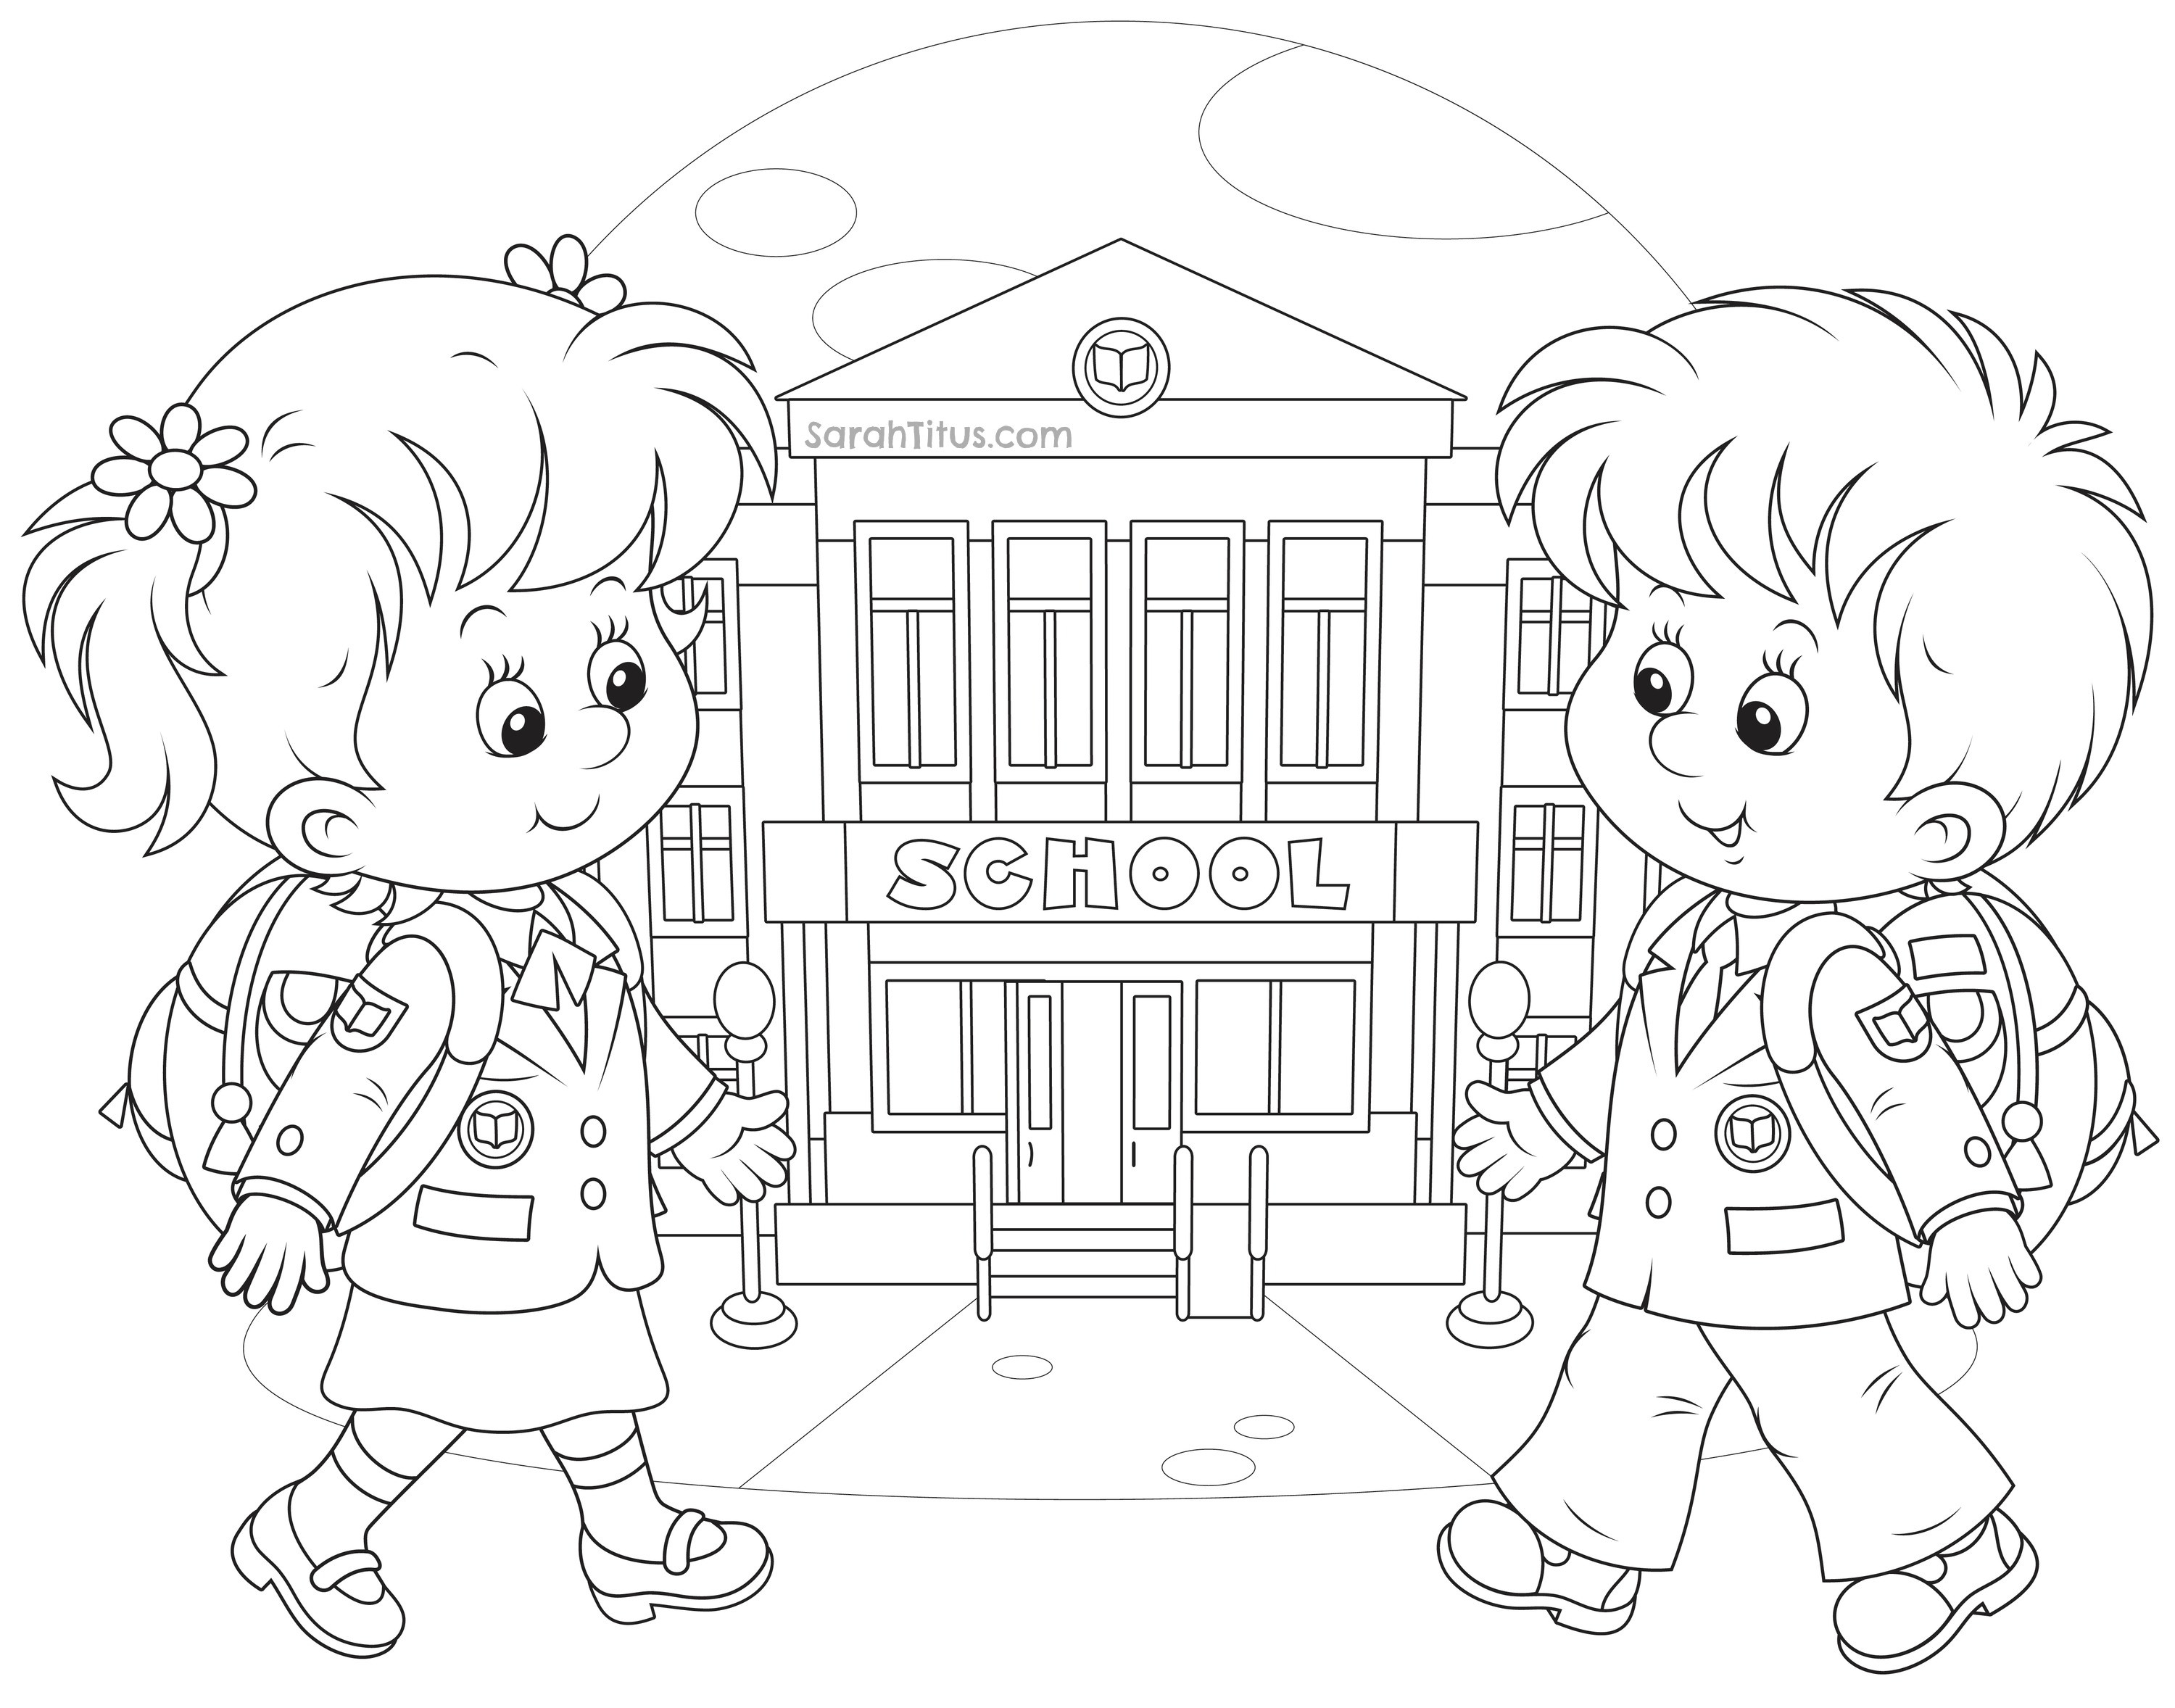 Coloring Sheets For Kids School Time  Back to School Coloring Pages Sarah Titus